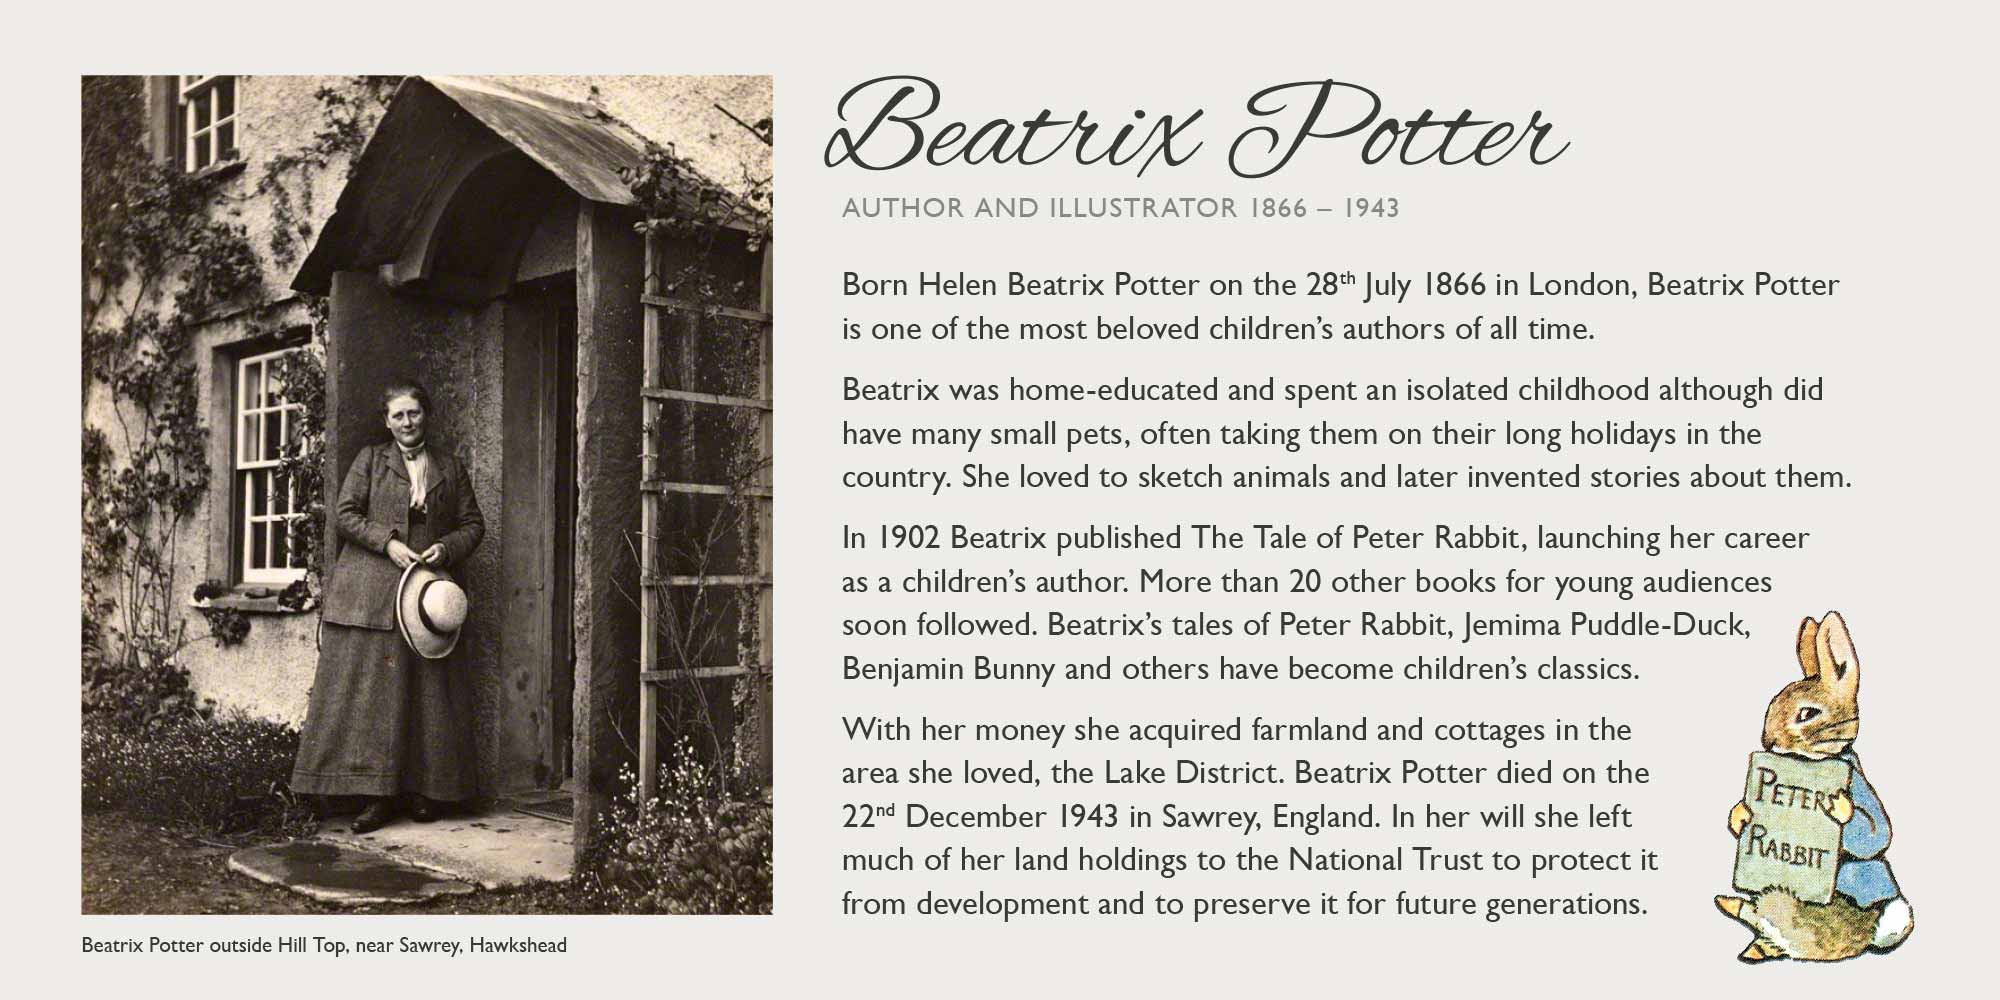 Beatrix Potter info panel